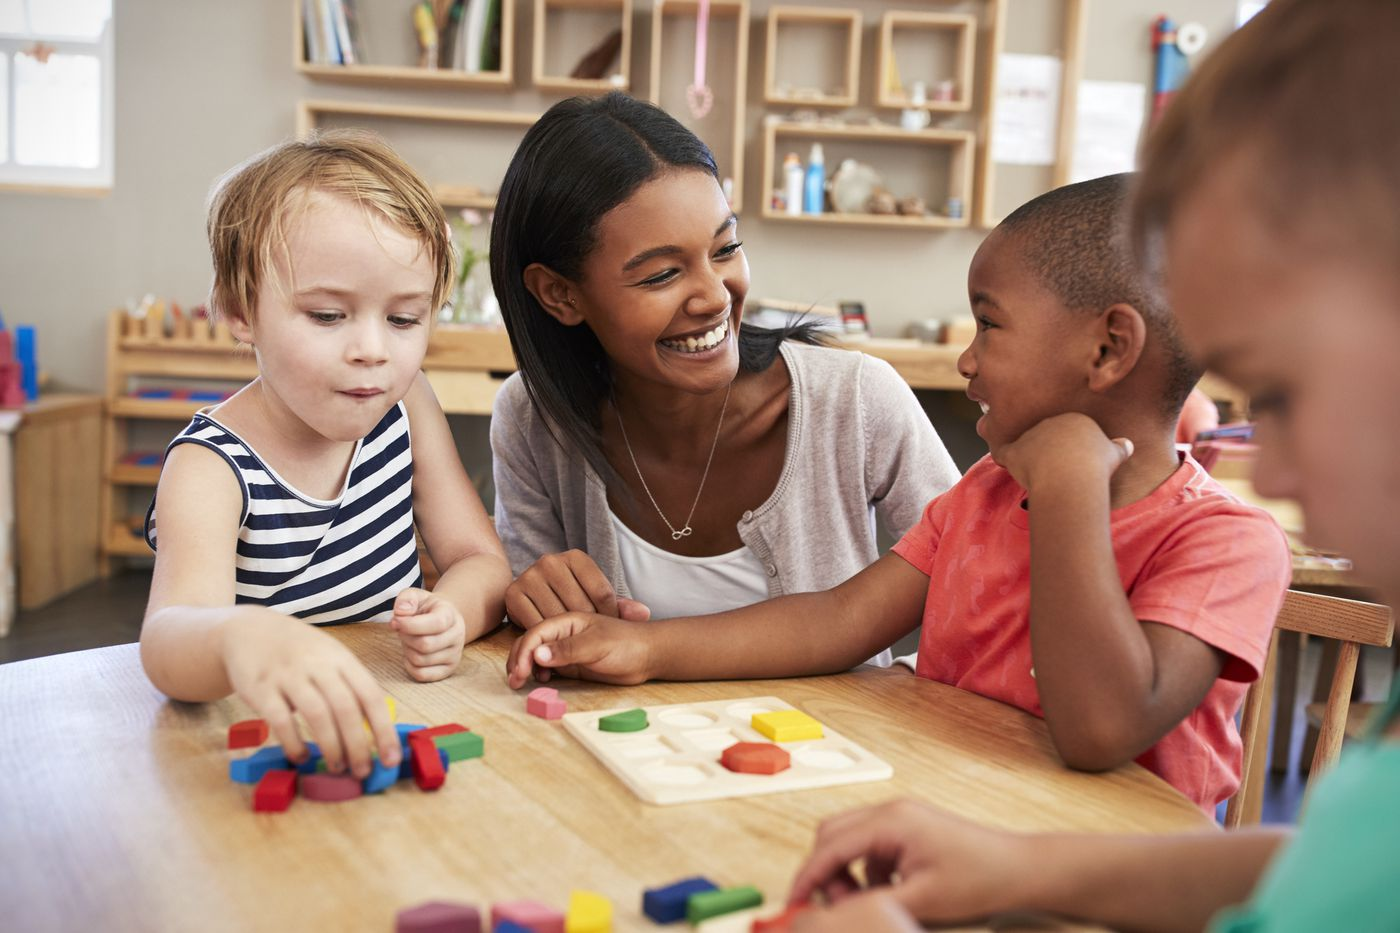 How to cope when a daycare comes to your 'hood. (If, for some reason, you hate the sound of children laughing.) | Opinion